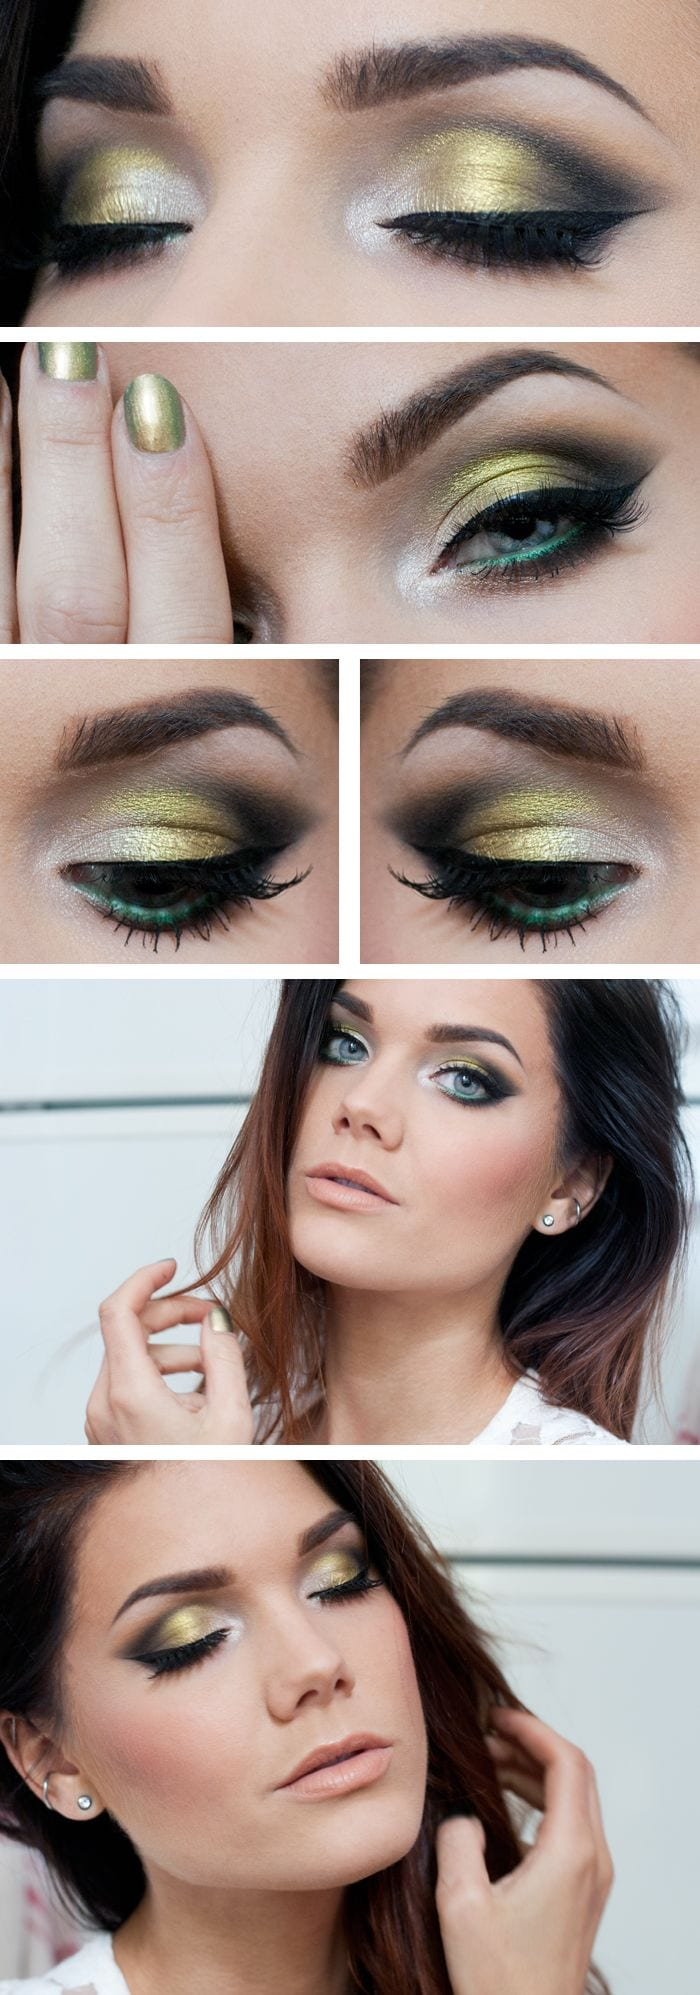 Best Eye Makeup Tutorials Youtube: Top 10 Simple Smokey Eye Makeup Tutorials For Green Eyes